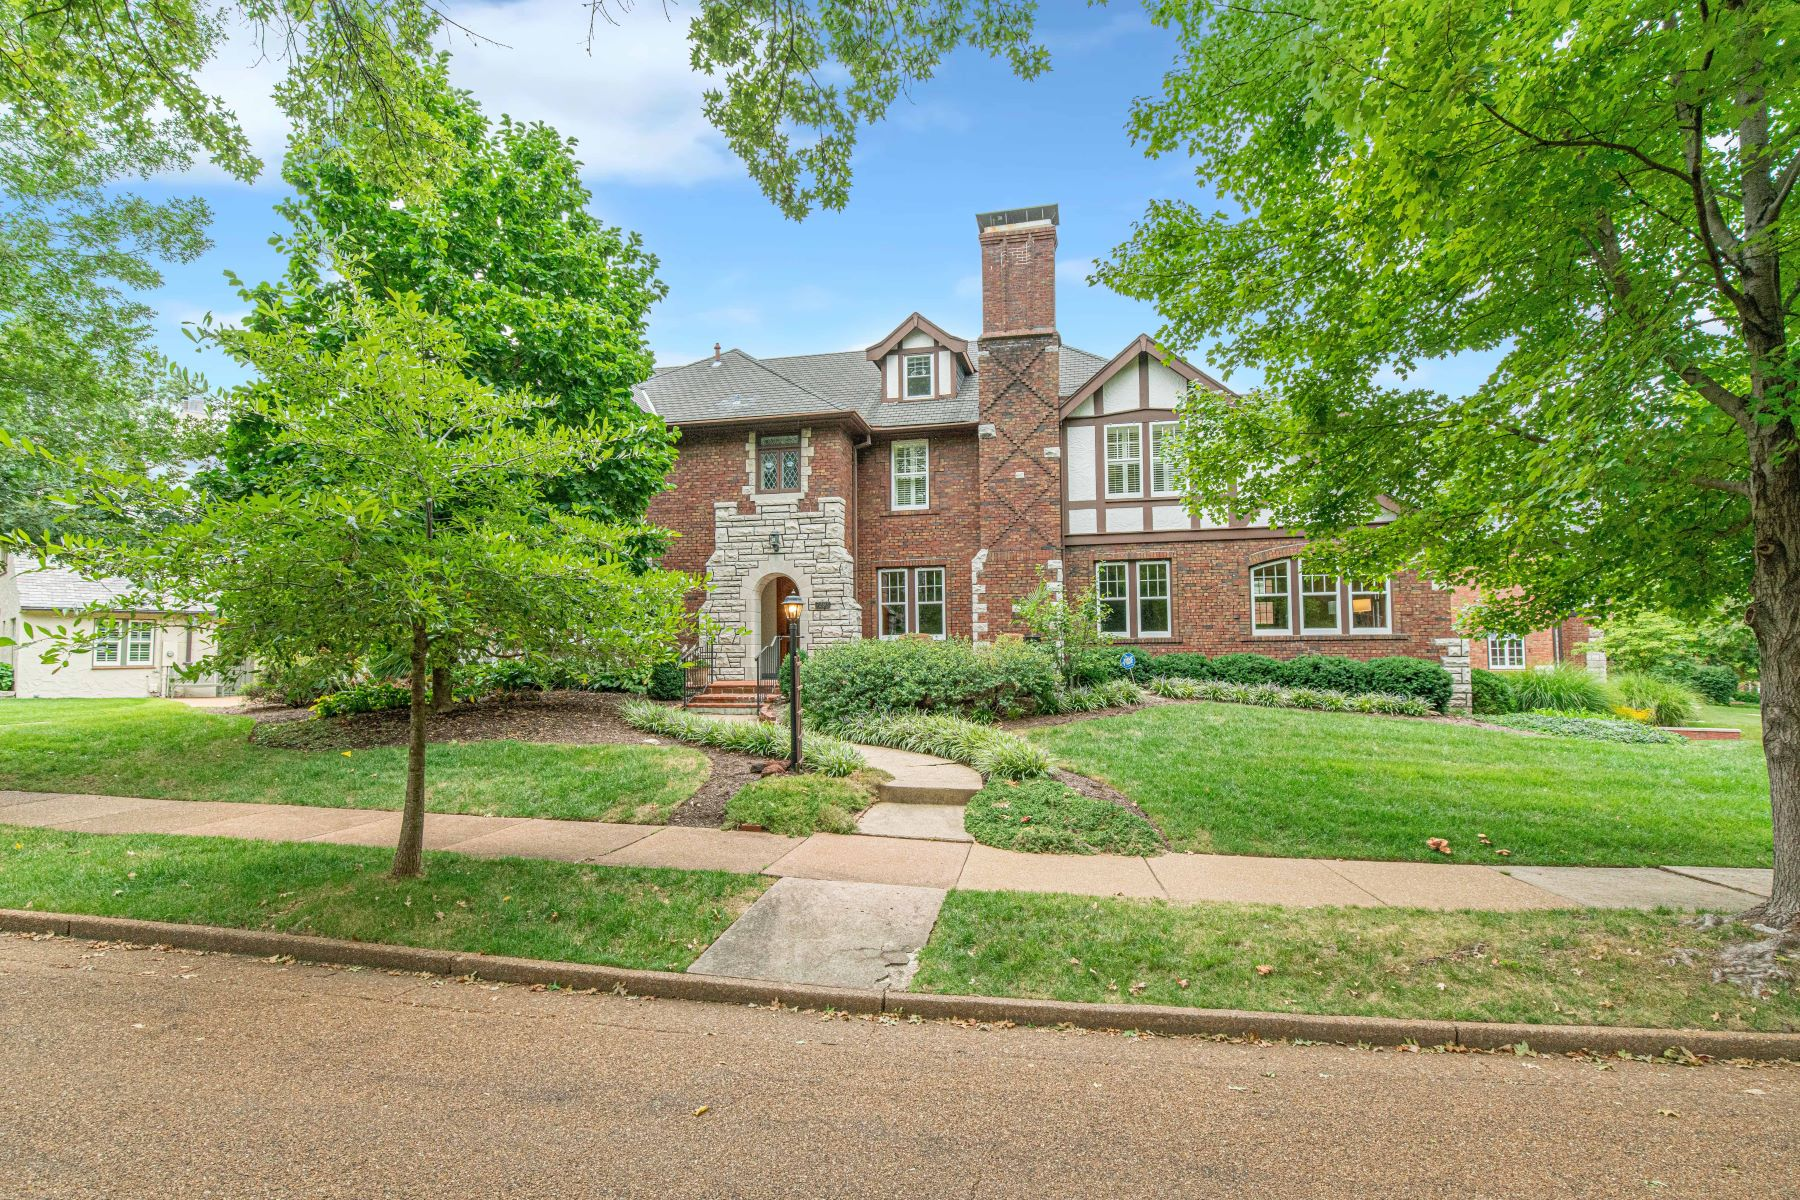 Property for Sale at Immaculate Tudor in prestigious University Hills! 7298 Greenway Avenue University City, Missouri 63130 United States